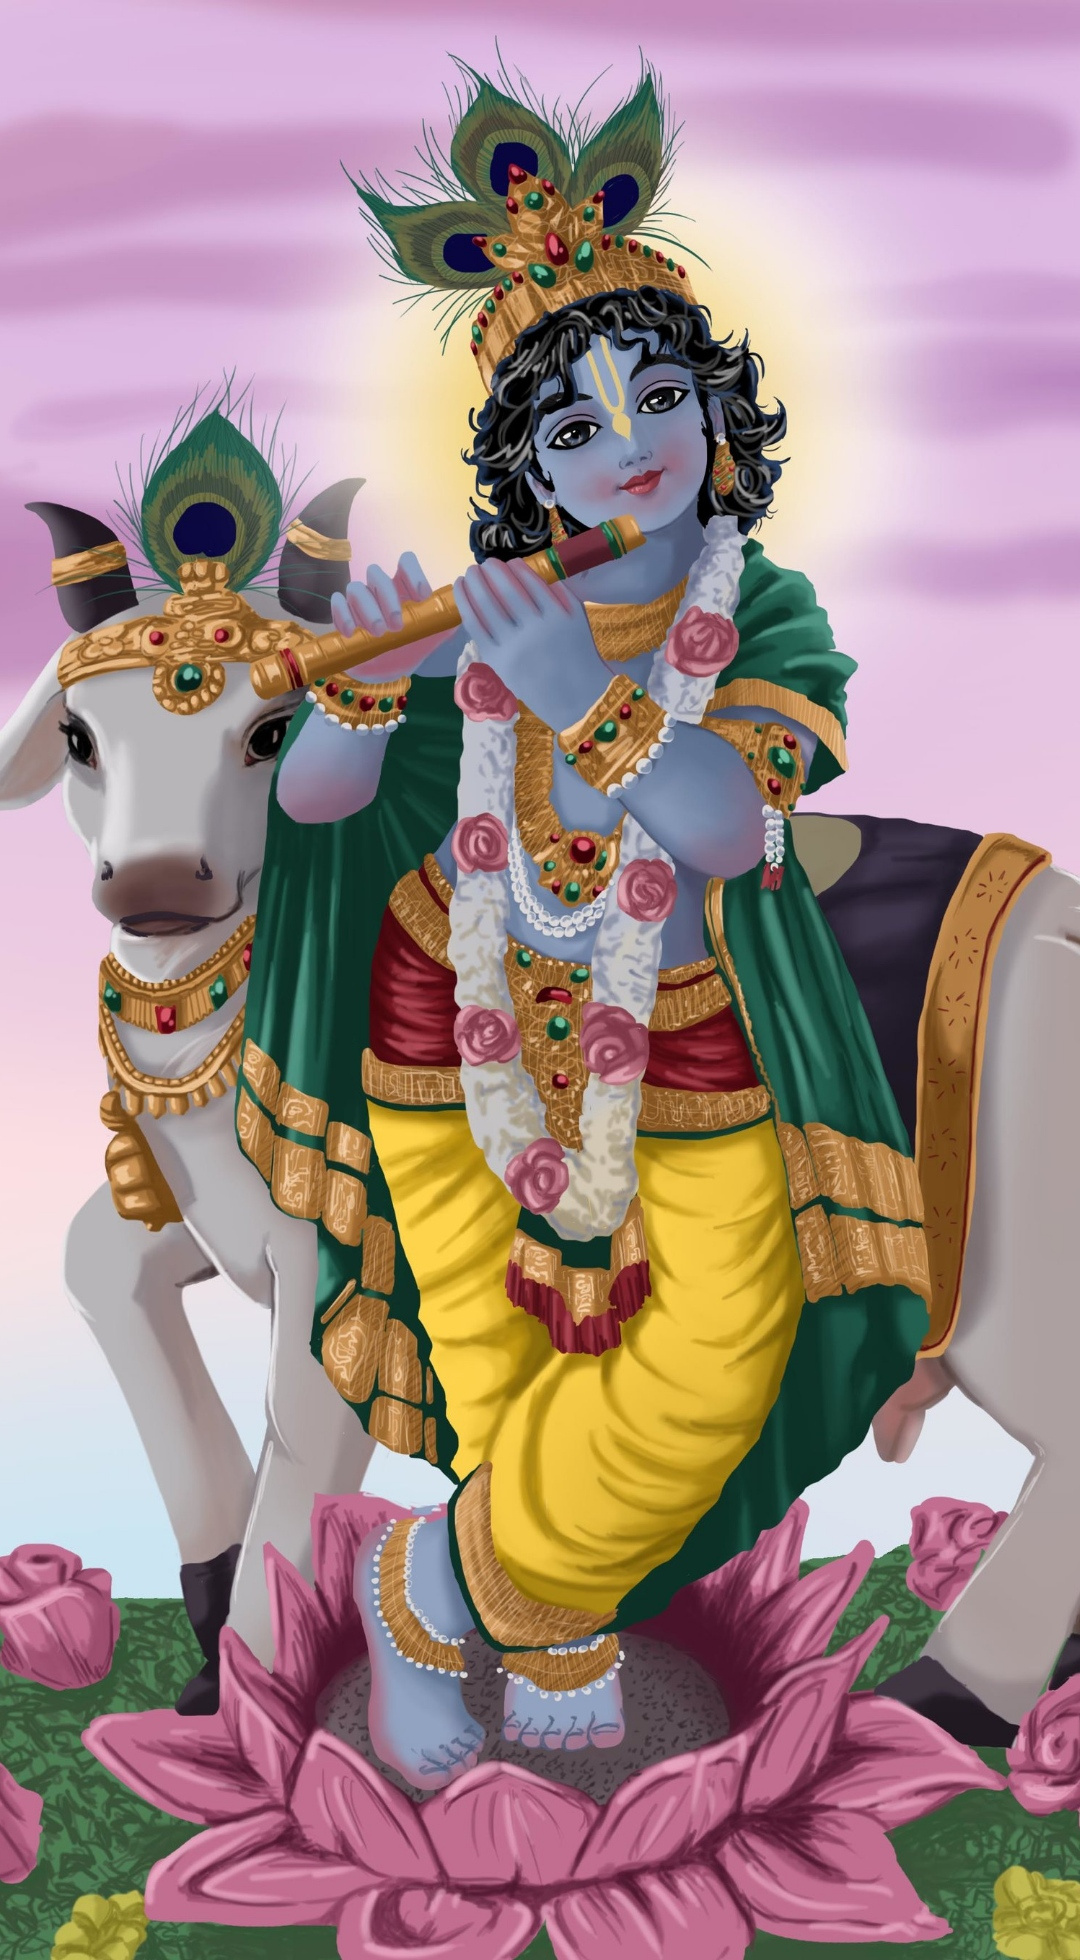 Sri krisna art mobile wallpaper